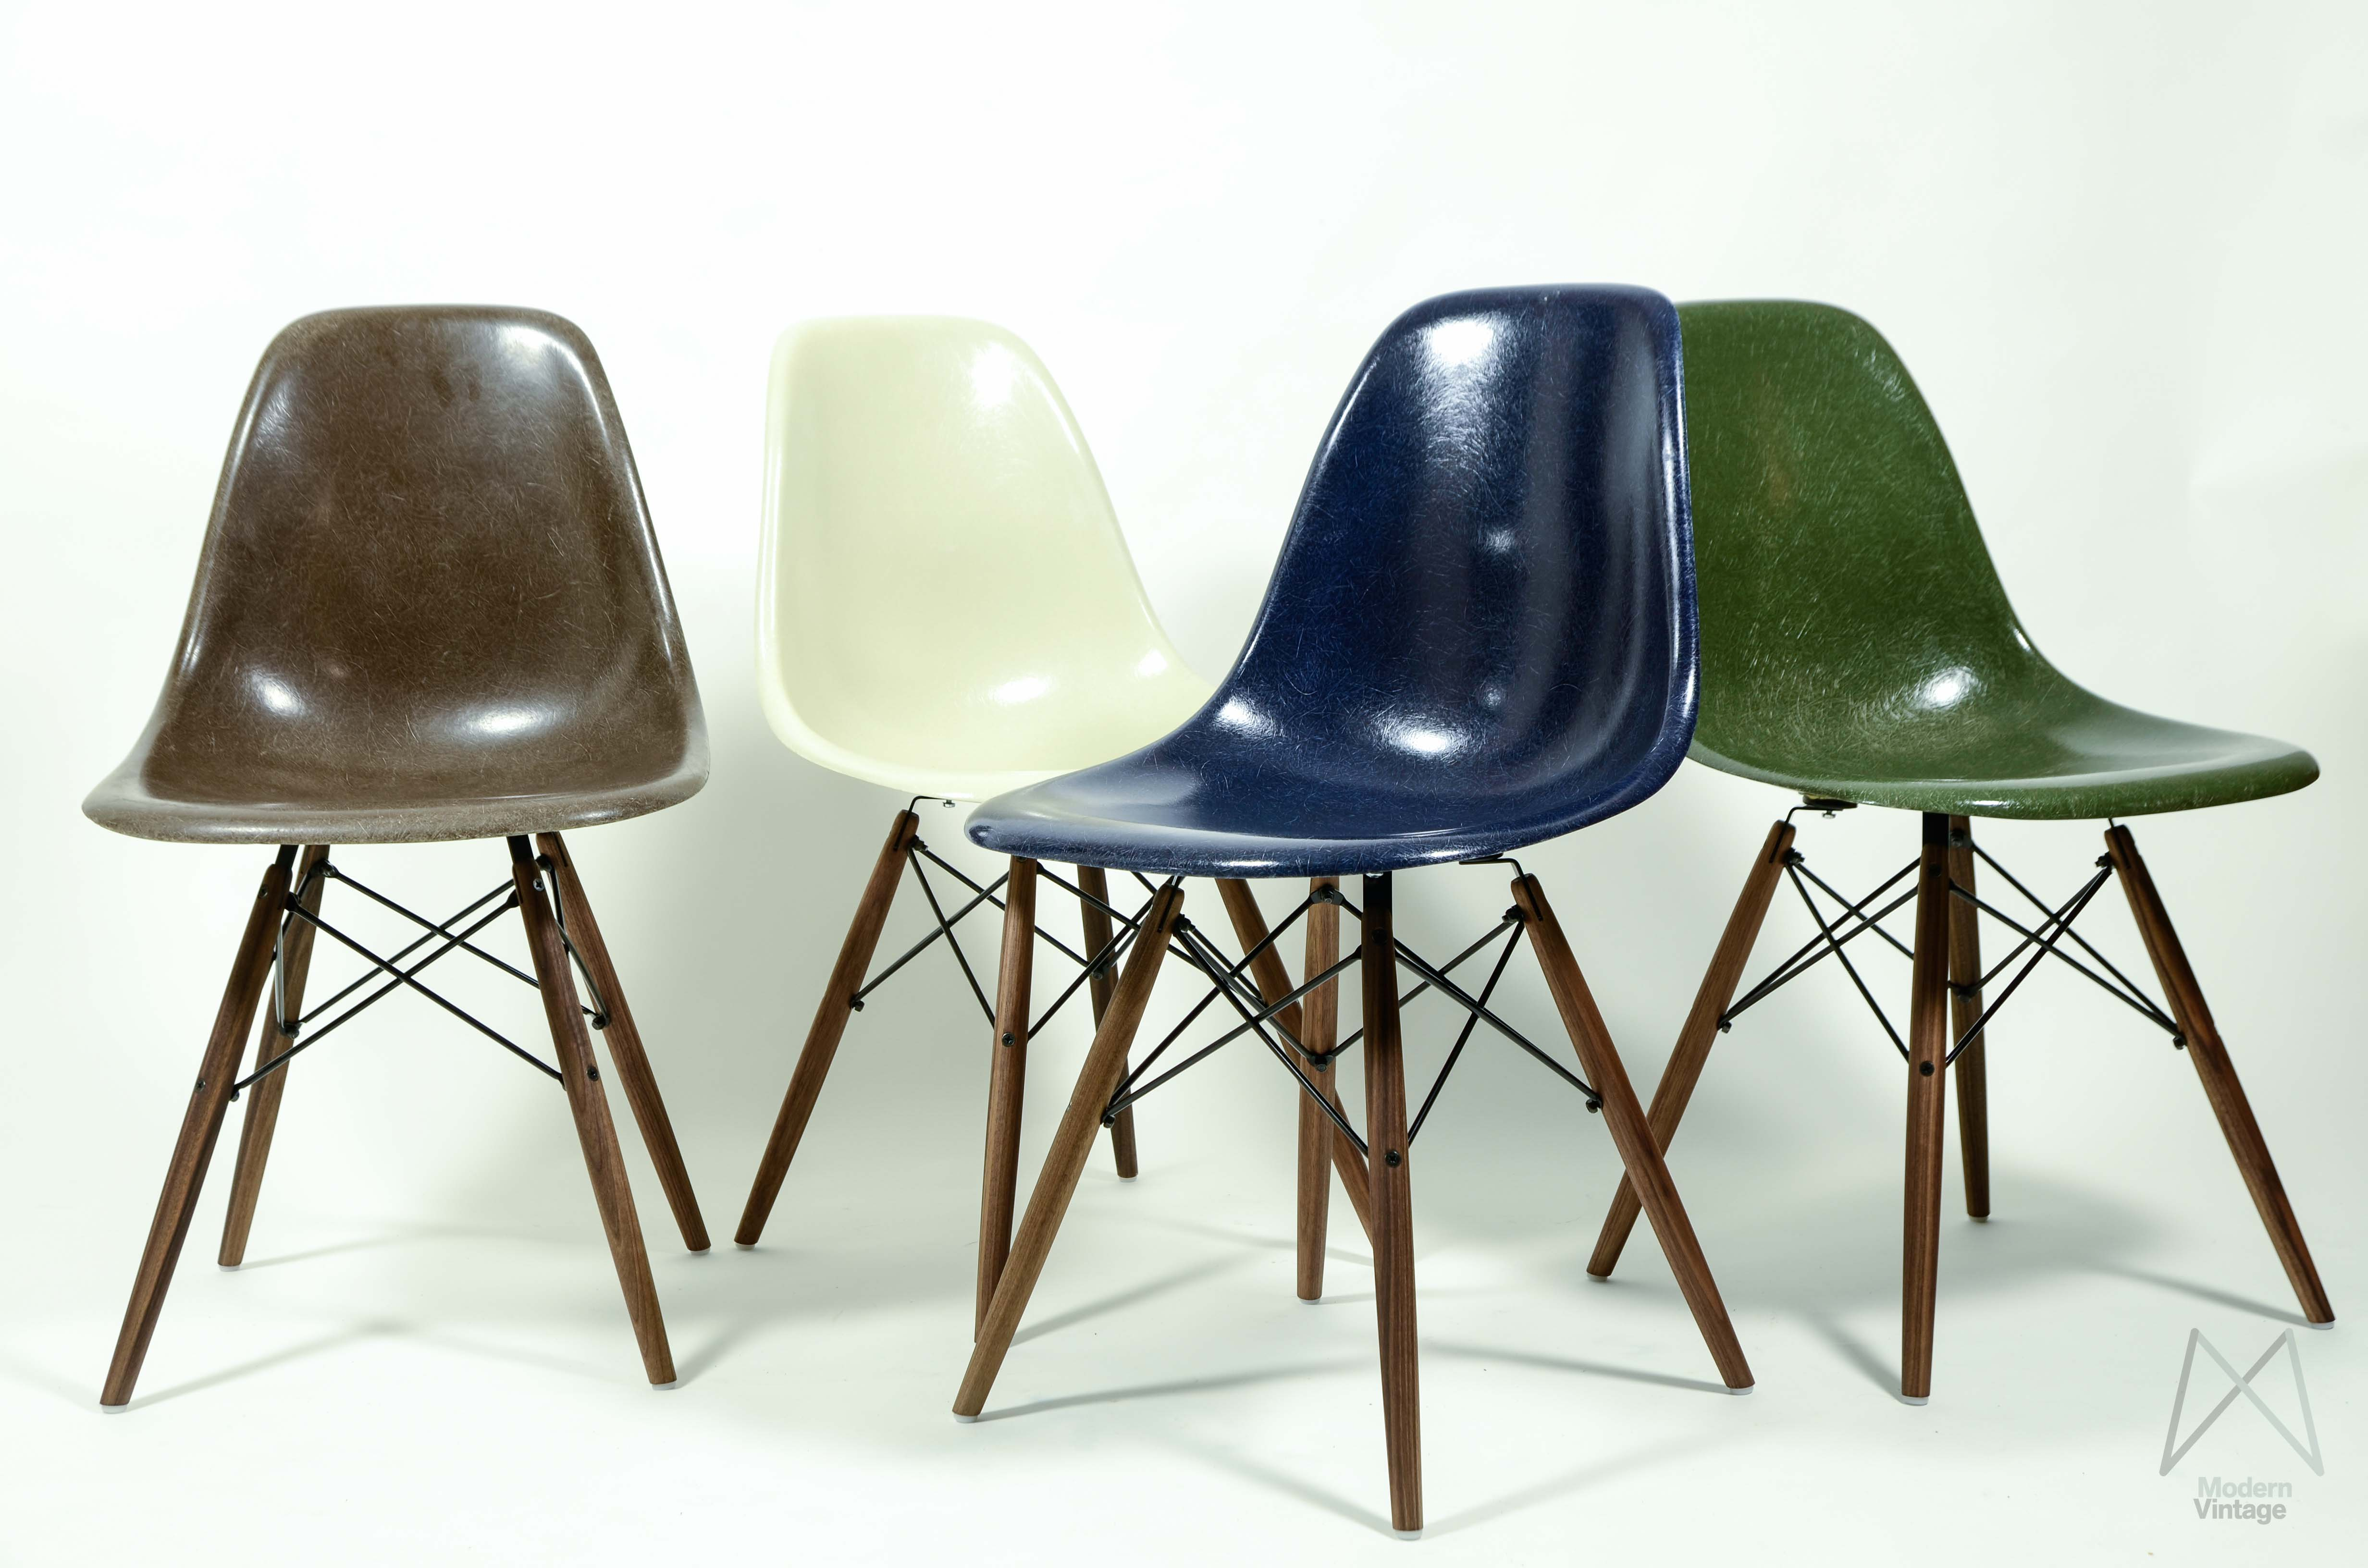 Charmant Image Of Eames Original Herman Miller Fiberglass DSW Chair Different Colors  ...